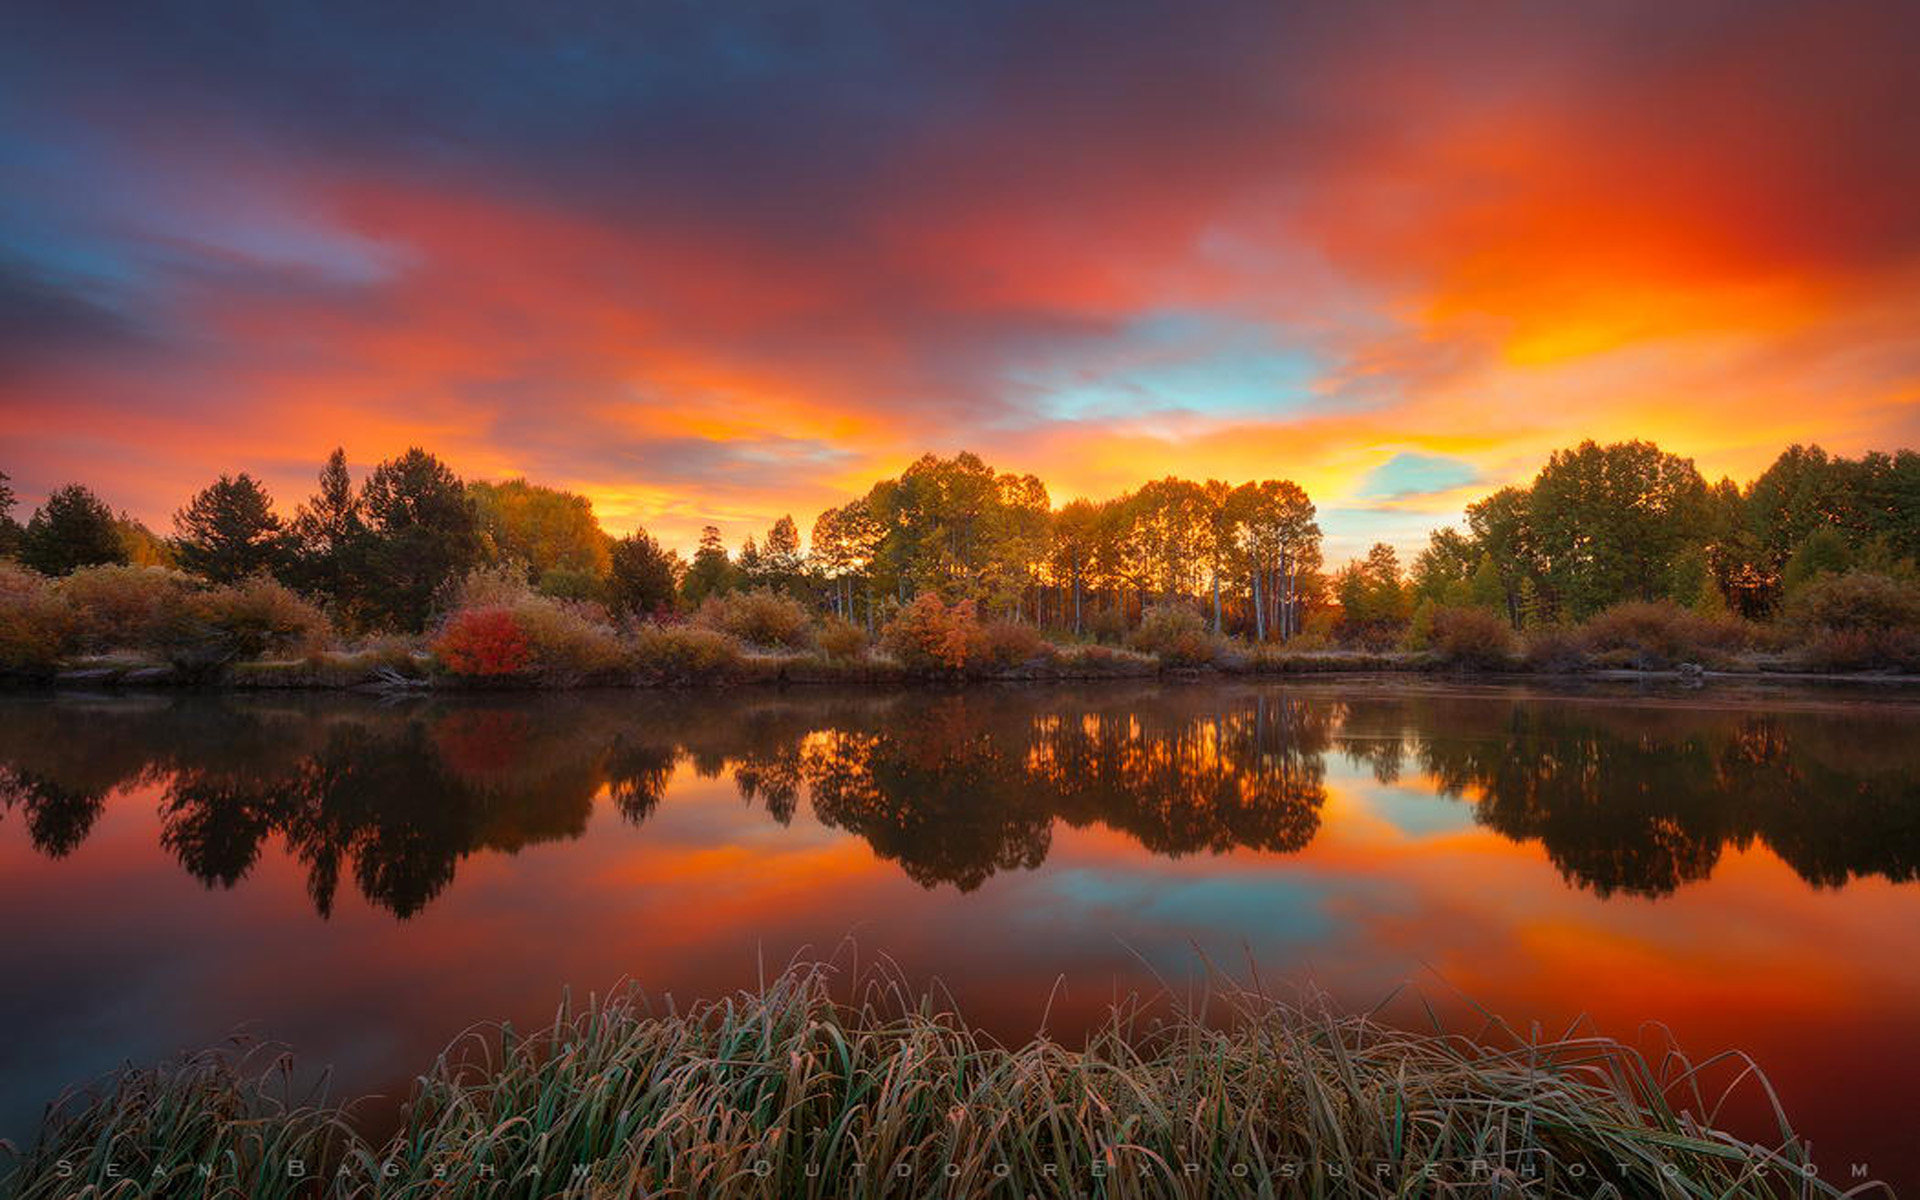 Hd Fall Wallpap Autumn Sky Sunrise On The Deschutes River The Main